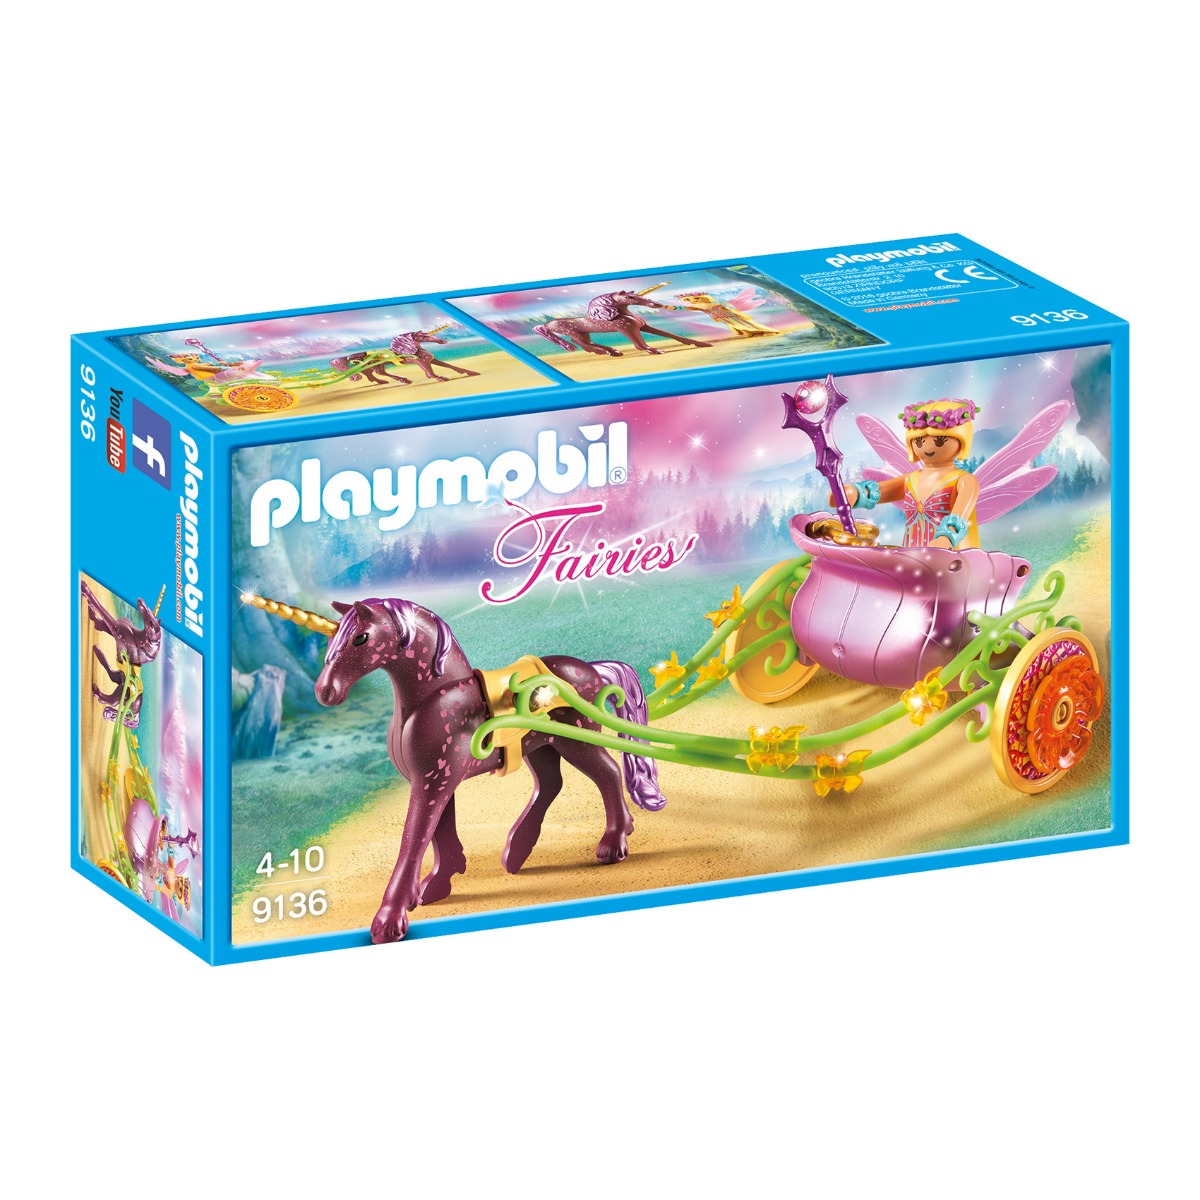 set figurine playmobil fairies - trasura cu unicorn si zane (9136)